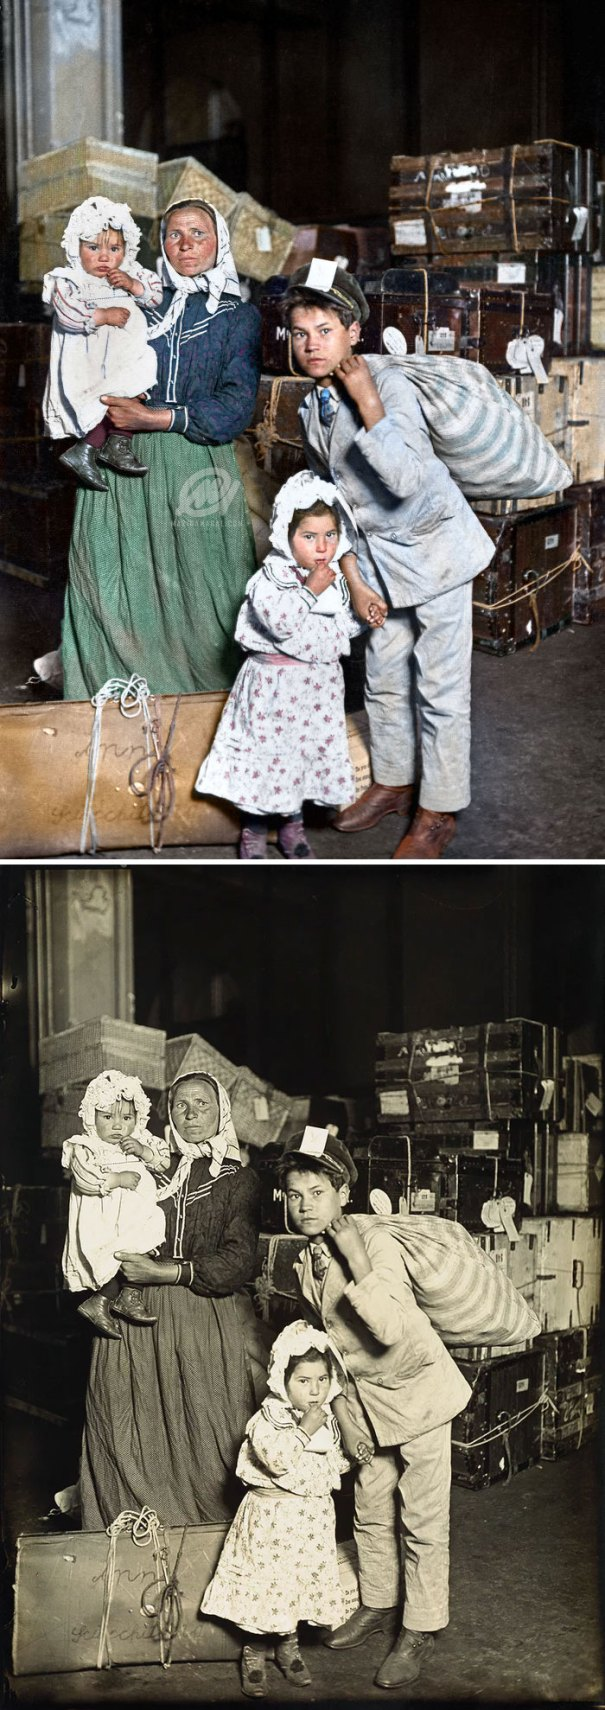 5b6d3b6ade8cb-colorized-historic-photos-marina-amaral-59-5b6bdc6ecbeff__700 This Artist Colorizes Old Black & White Photos, And They Will Change The Way People Imagine History Photography Random